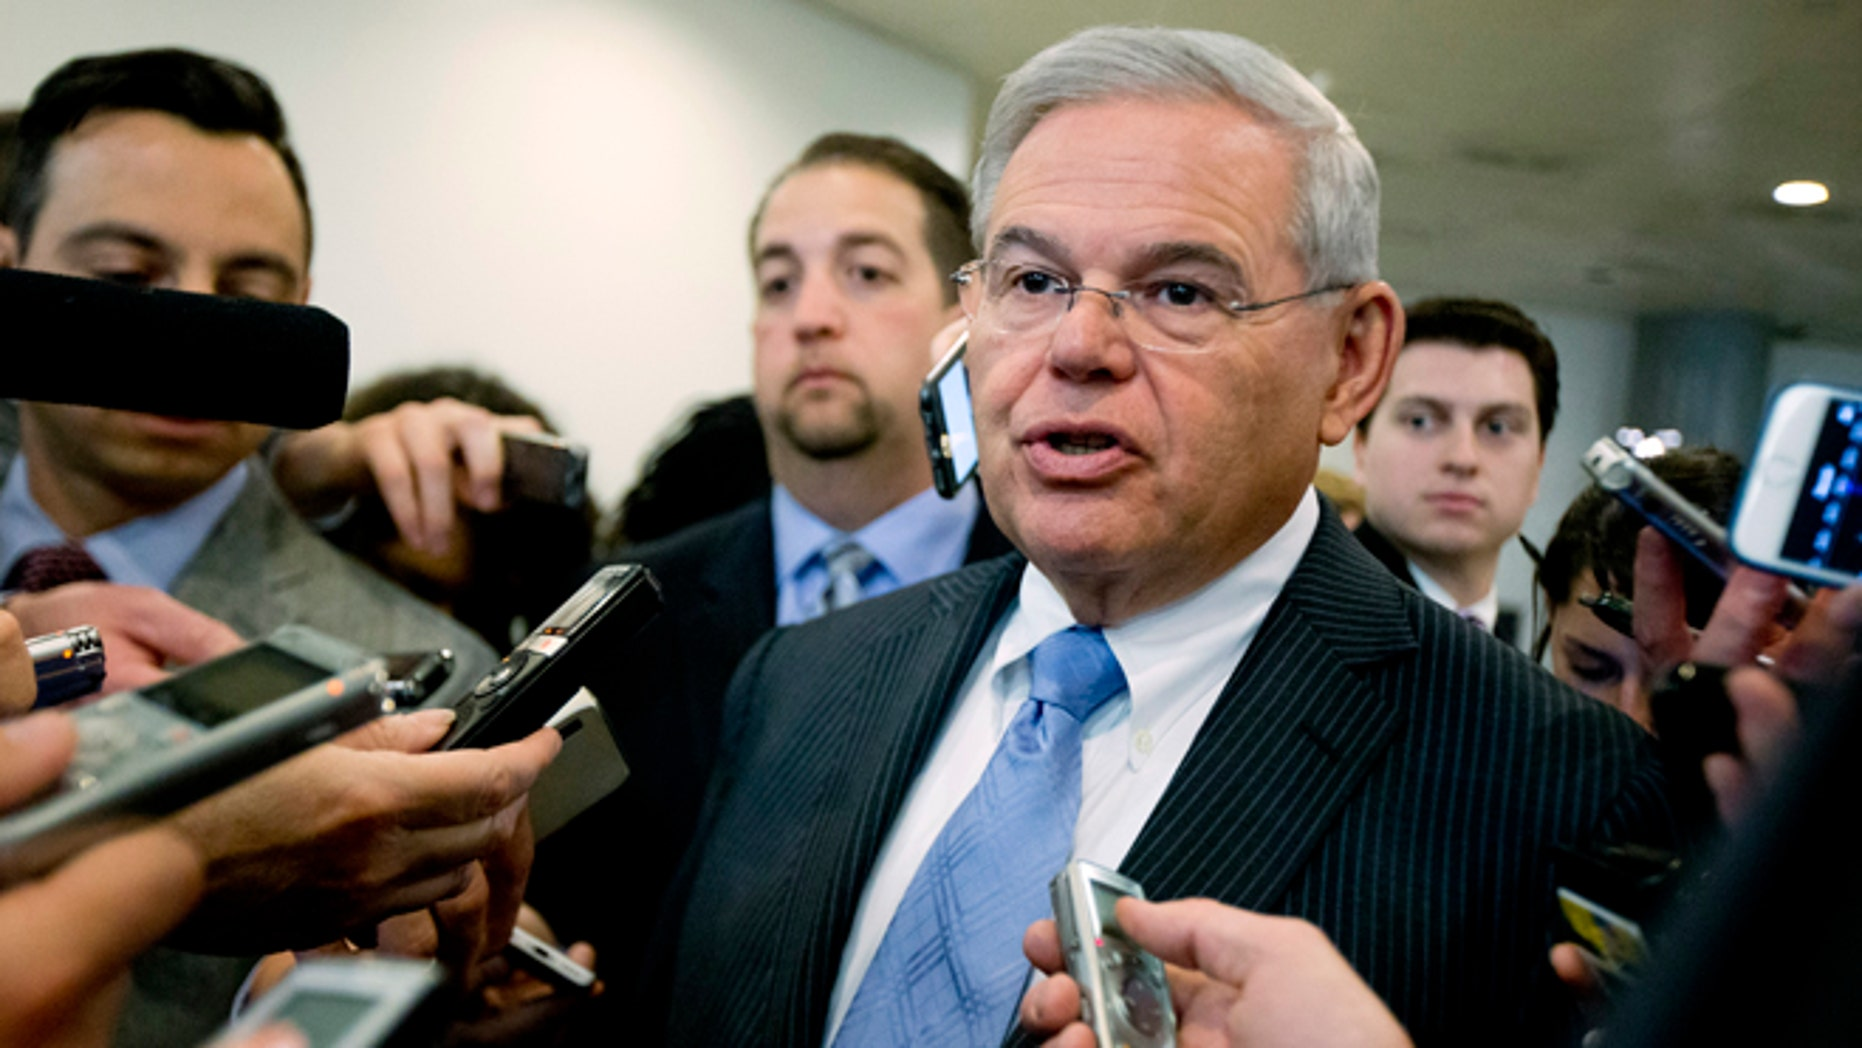 FILE - In this April 14, 2015, file photo, Sen.  Robert Menendez, D-N.J. speaks with members of the media on Capitol Hill in Washington. Menendez, facing a federal indictment on bribery and corruption charges, reported his legal defense fund has raised nearly $1.3 million since it was launched last year and $430,000 from the start of this year until the day before he was indicted. Menendez, a Democrat, has denied any wrongdoing and vowed to fight the indictment, which alleges he helped his longtime friend and co-defendant, Florida eye doctor Salomon Melgen, with his business dealings in exchange for trips to a lavish villa in the Dominican Republic and campaign donations. (AP Photo/Manuel Balce Ceneta, File)